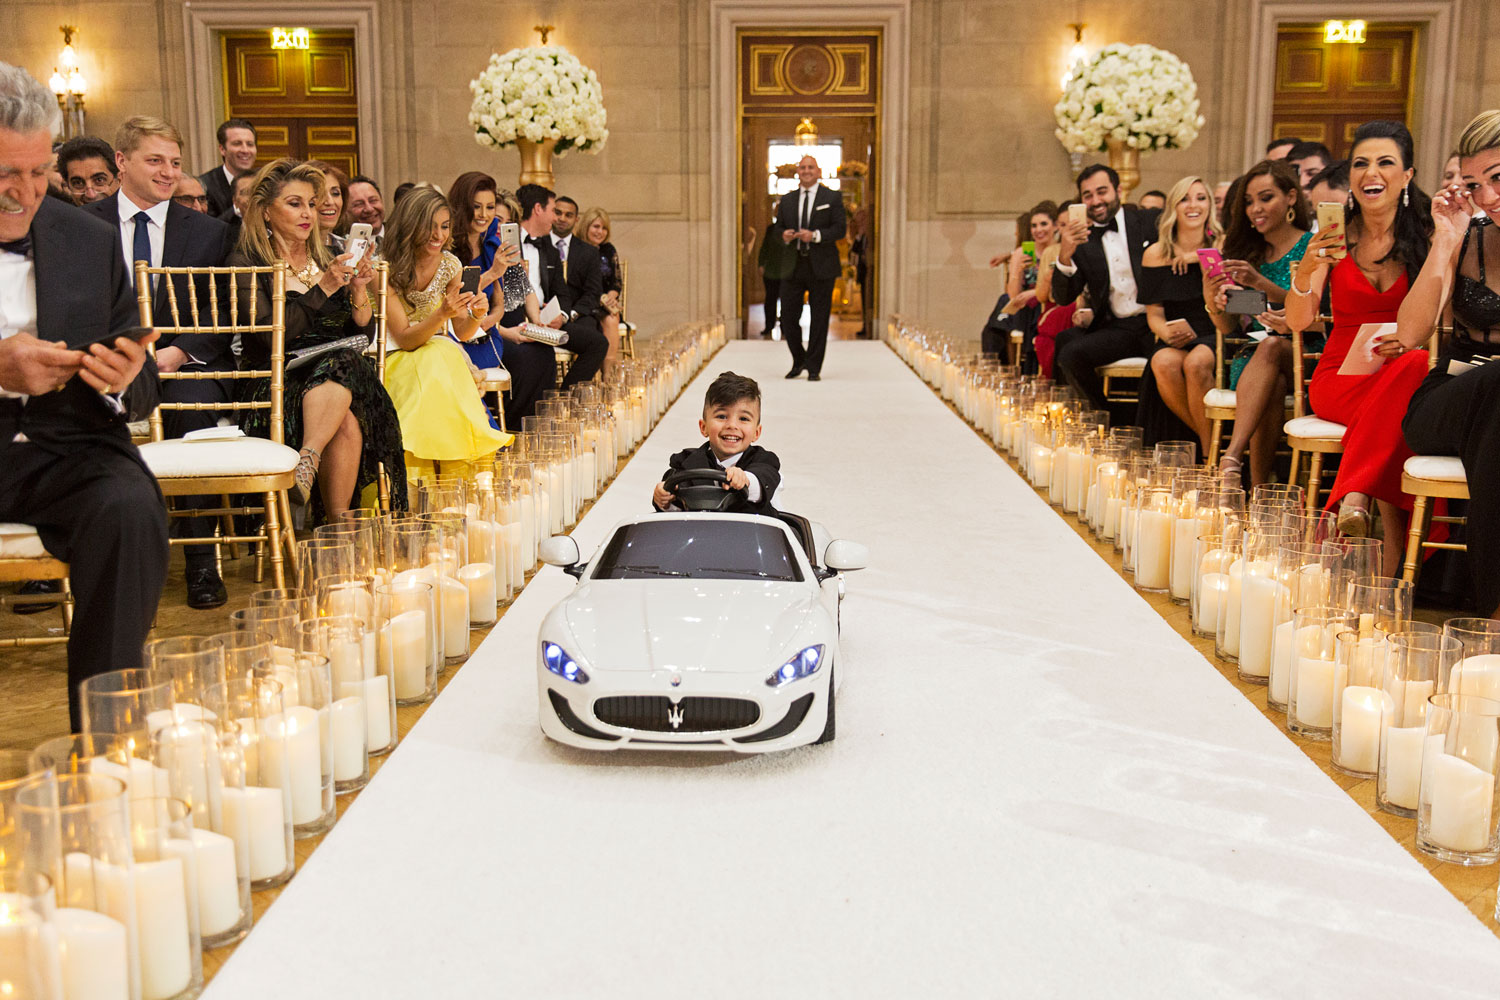 cute ring bearer going down wedding ceremony aisle in mini maserati car